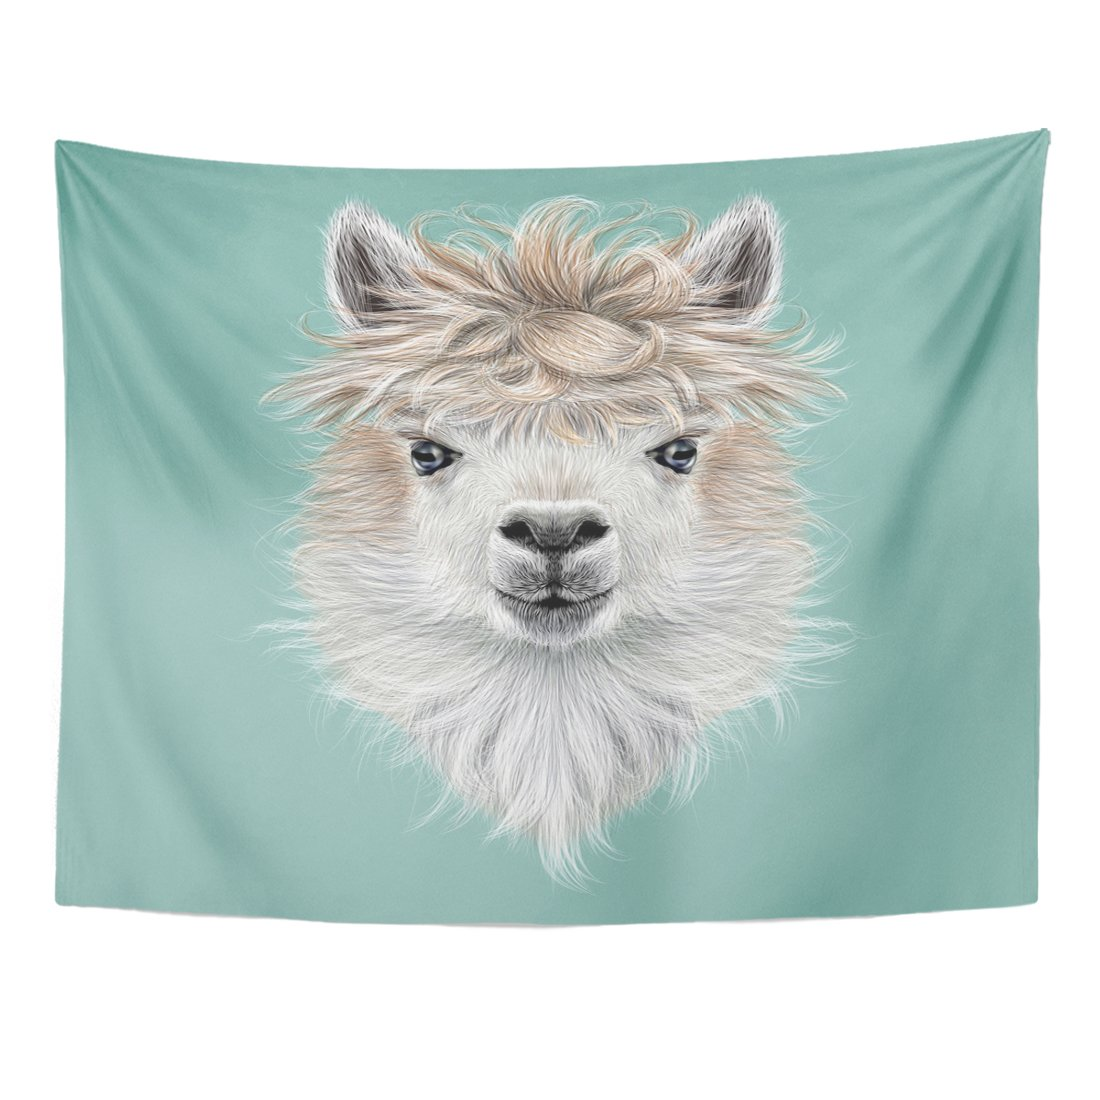 TOMPOP Tapestry America Llama Animal Portrait of Alpaca on Blue Home Decor Wall Hanging for Living Room Bedroom Dorm 60x80 Inches